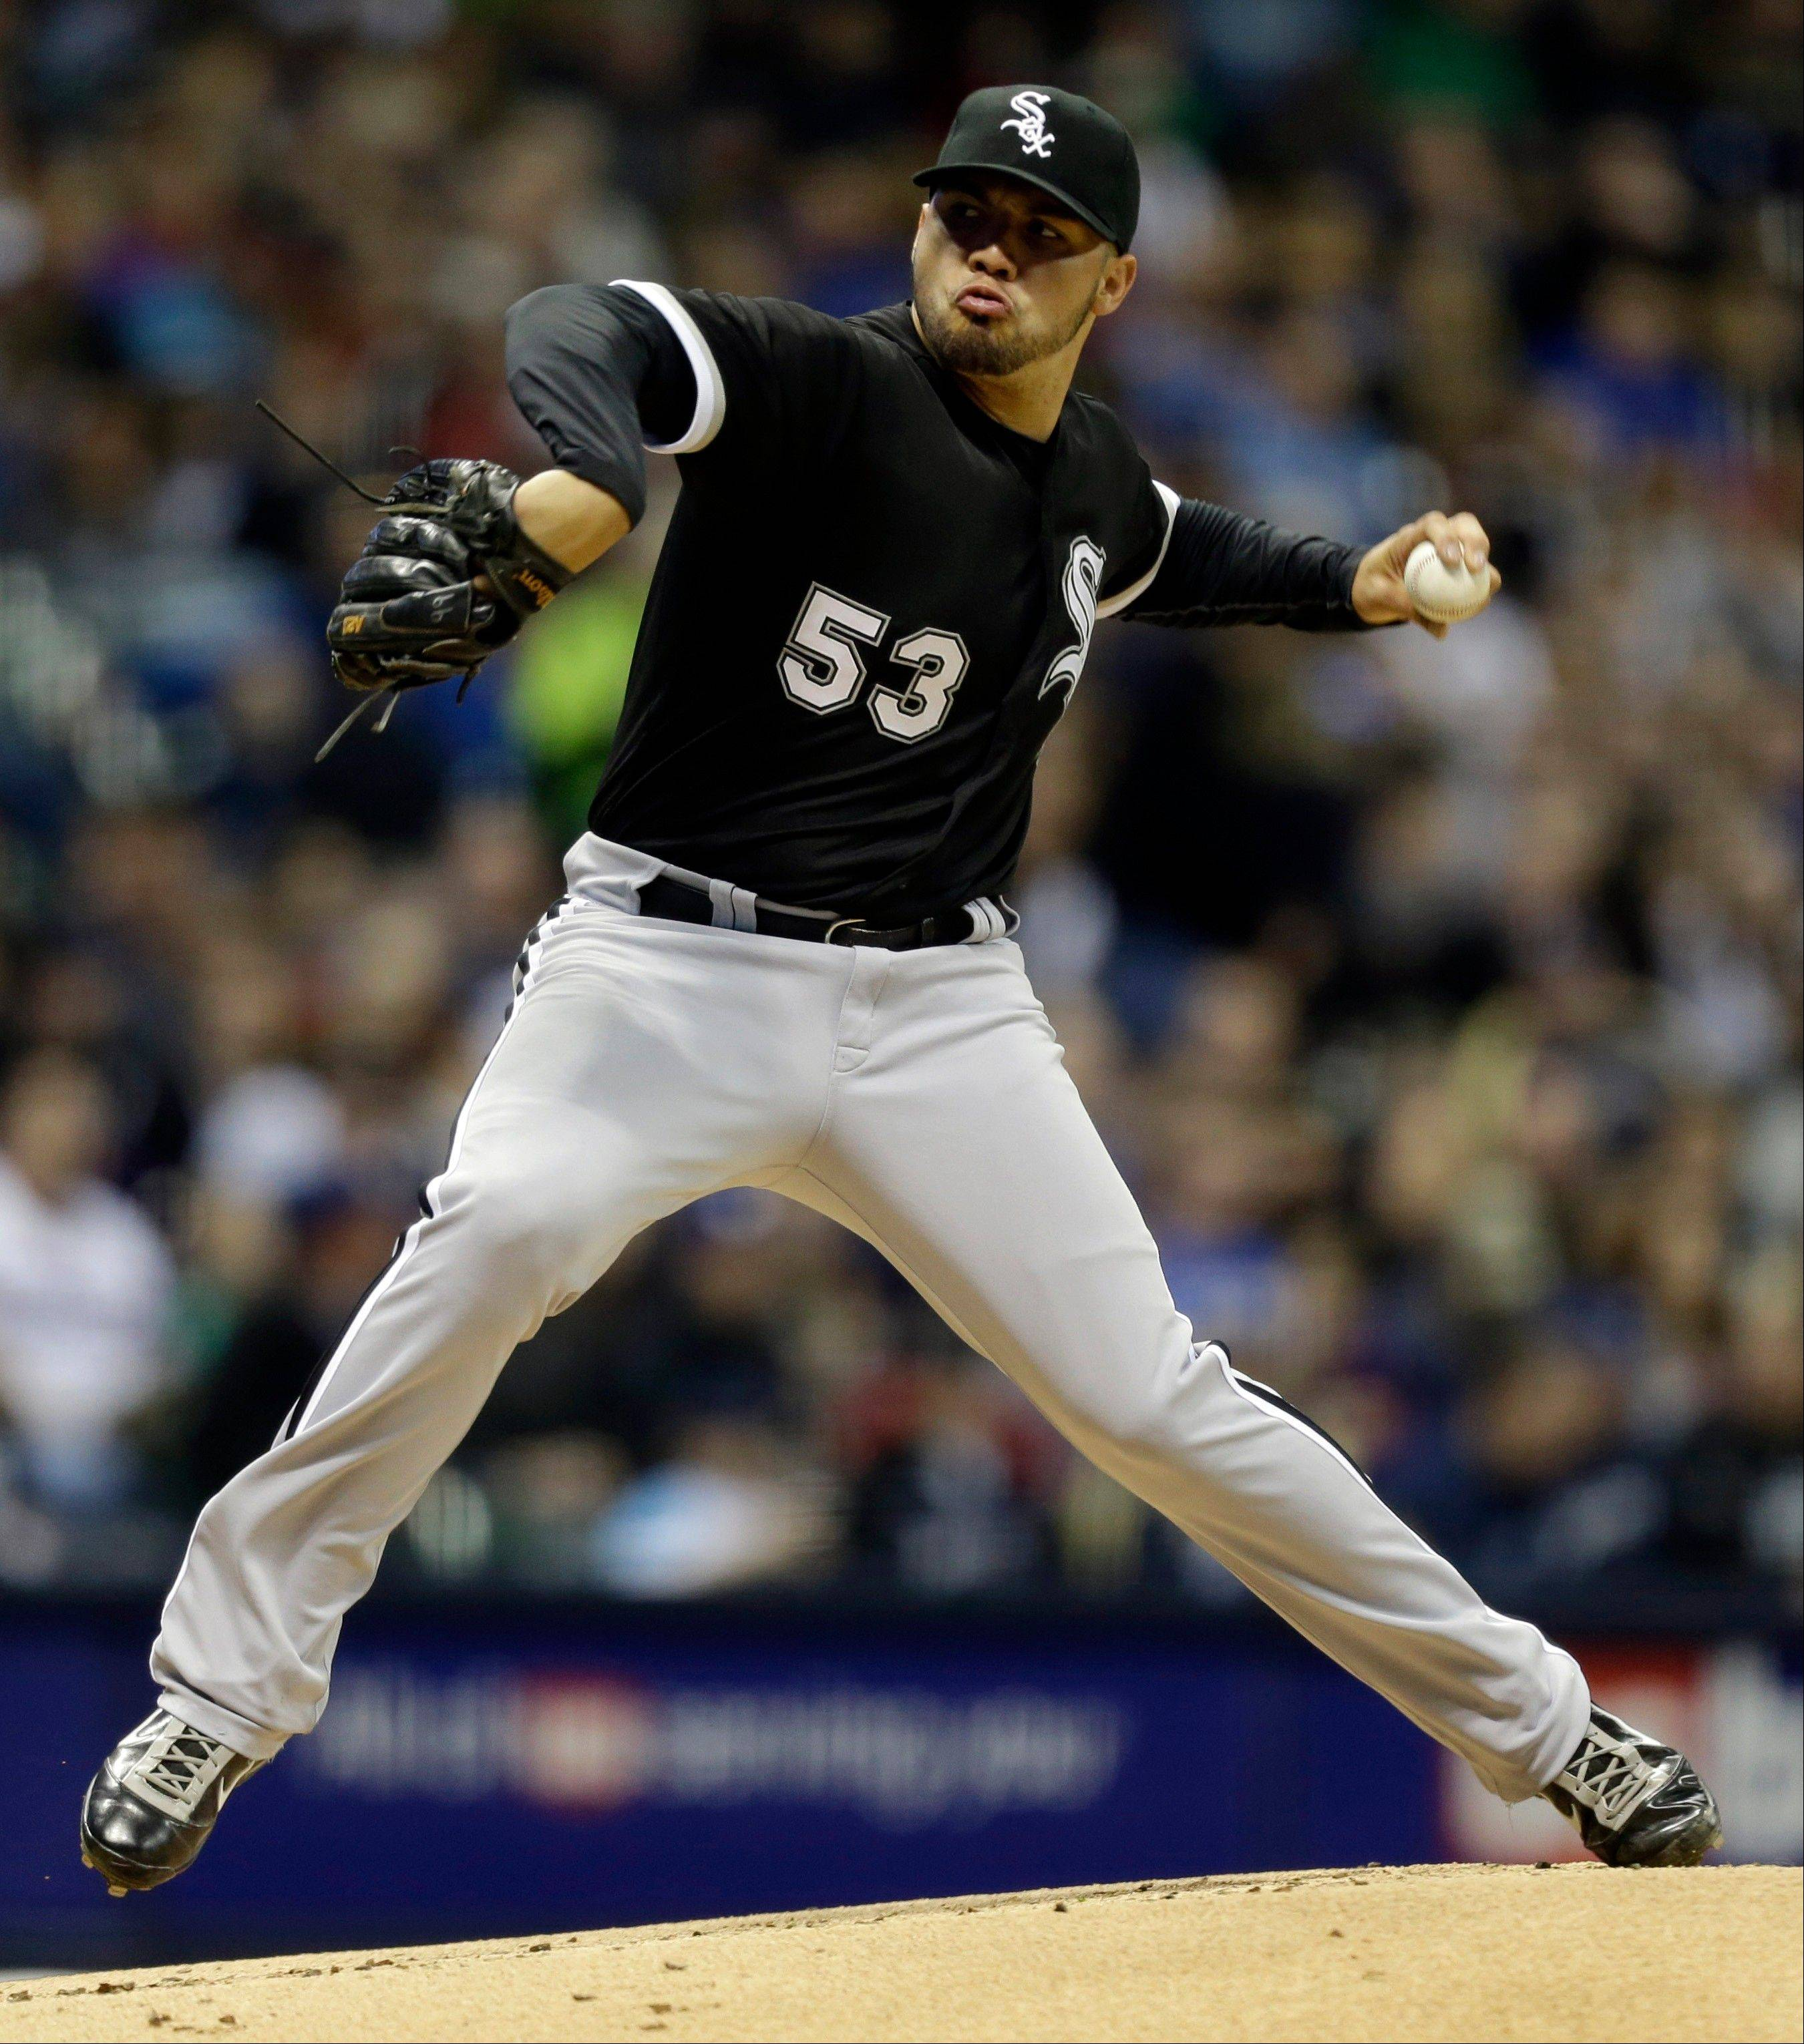 Chicago White Sox starting pitcher Hector Santiago delivers to the Chicago White Sox during the first inning of an exhibition baseball game Friday, March 29, 2013, in Milwaukee.